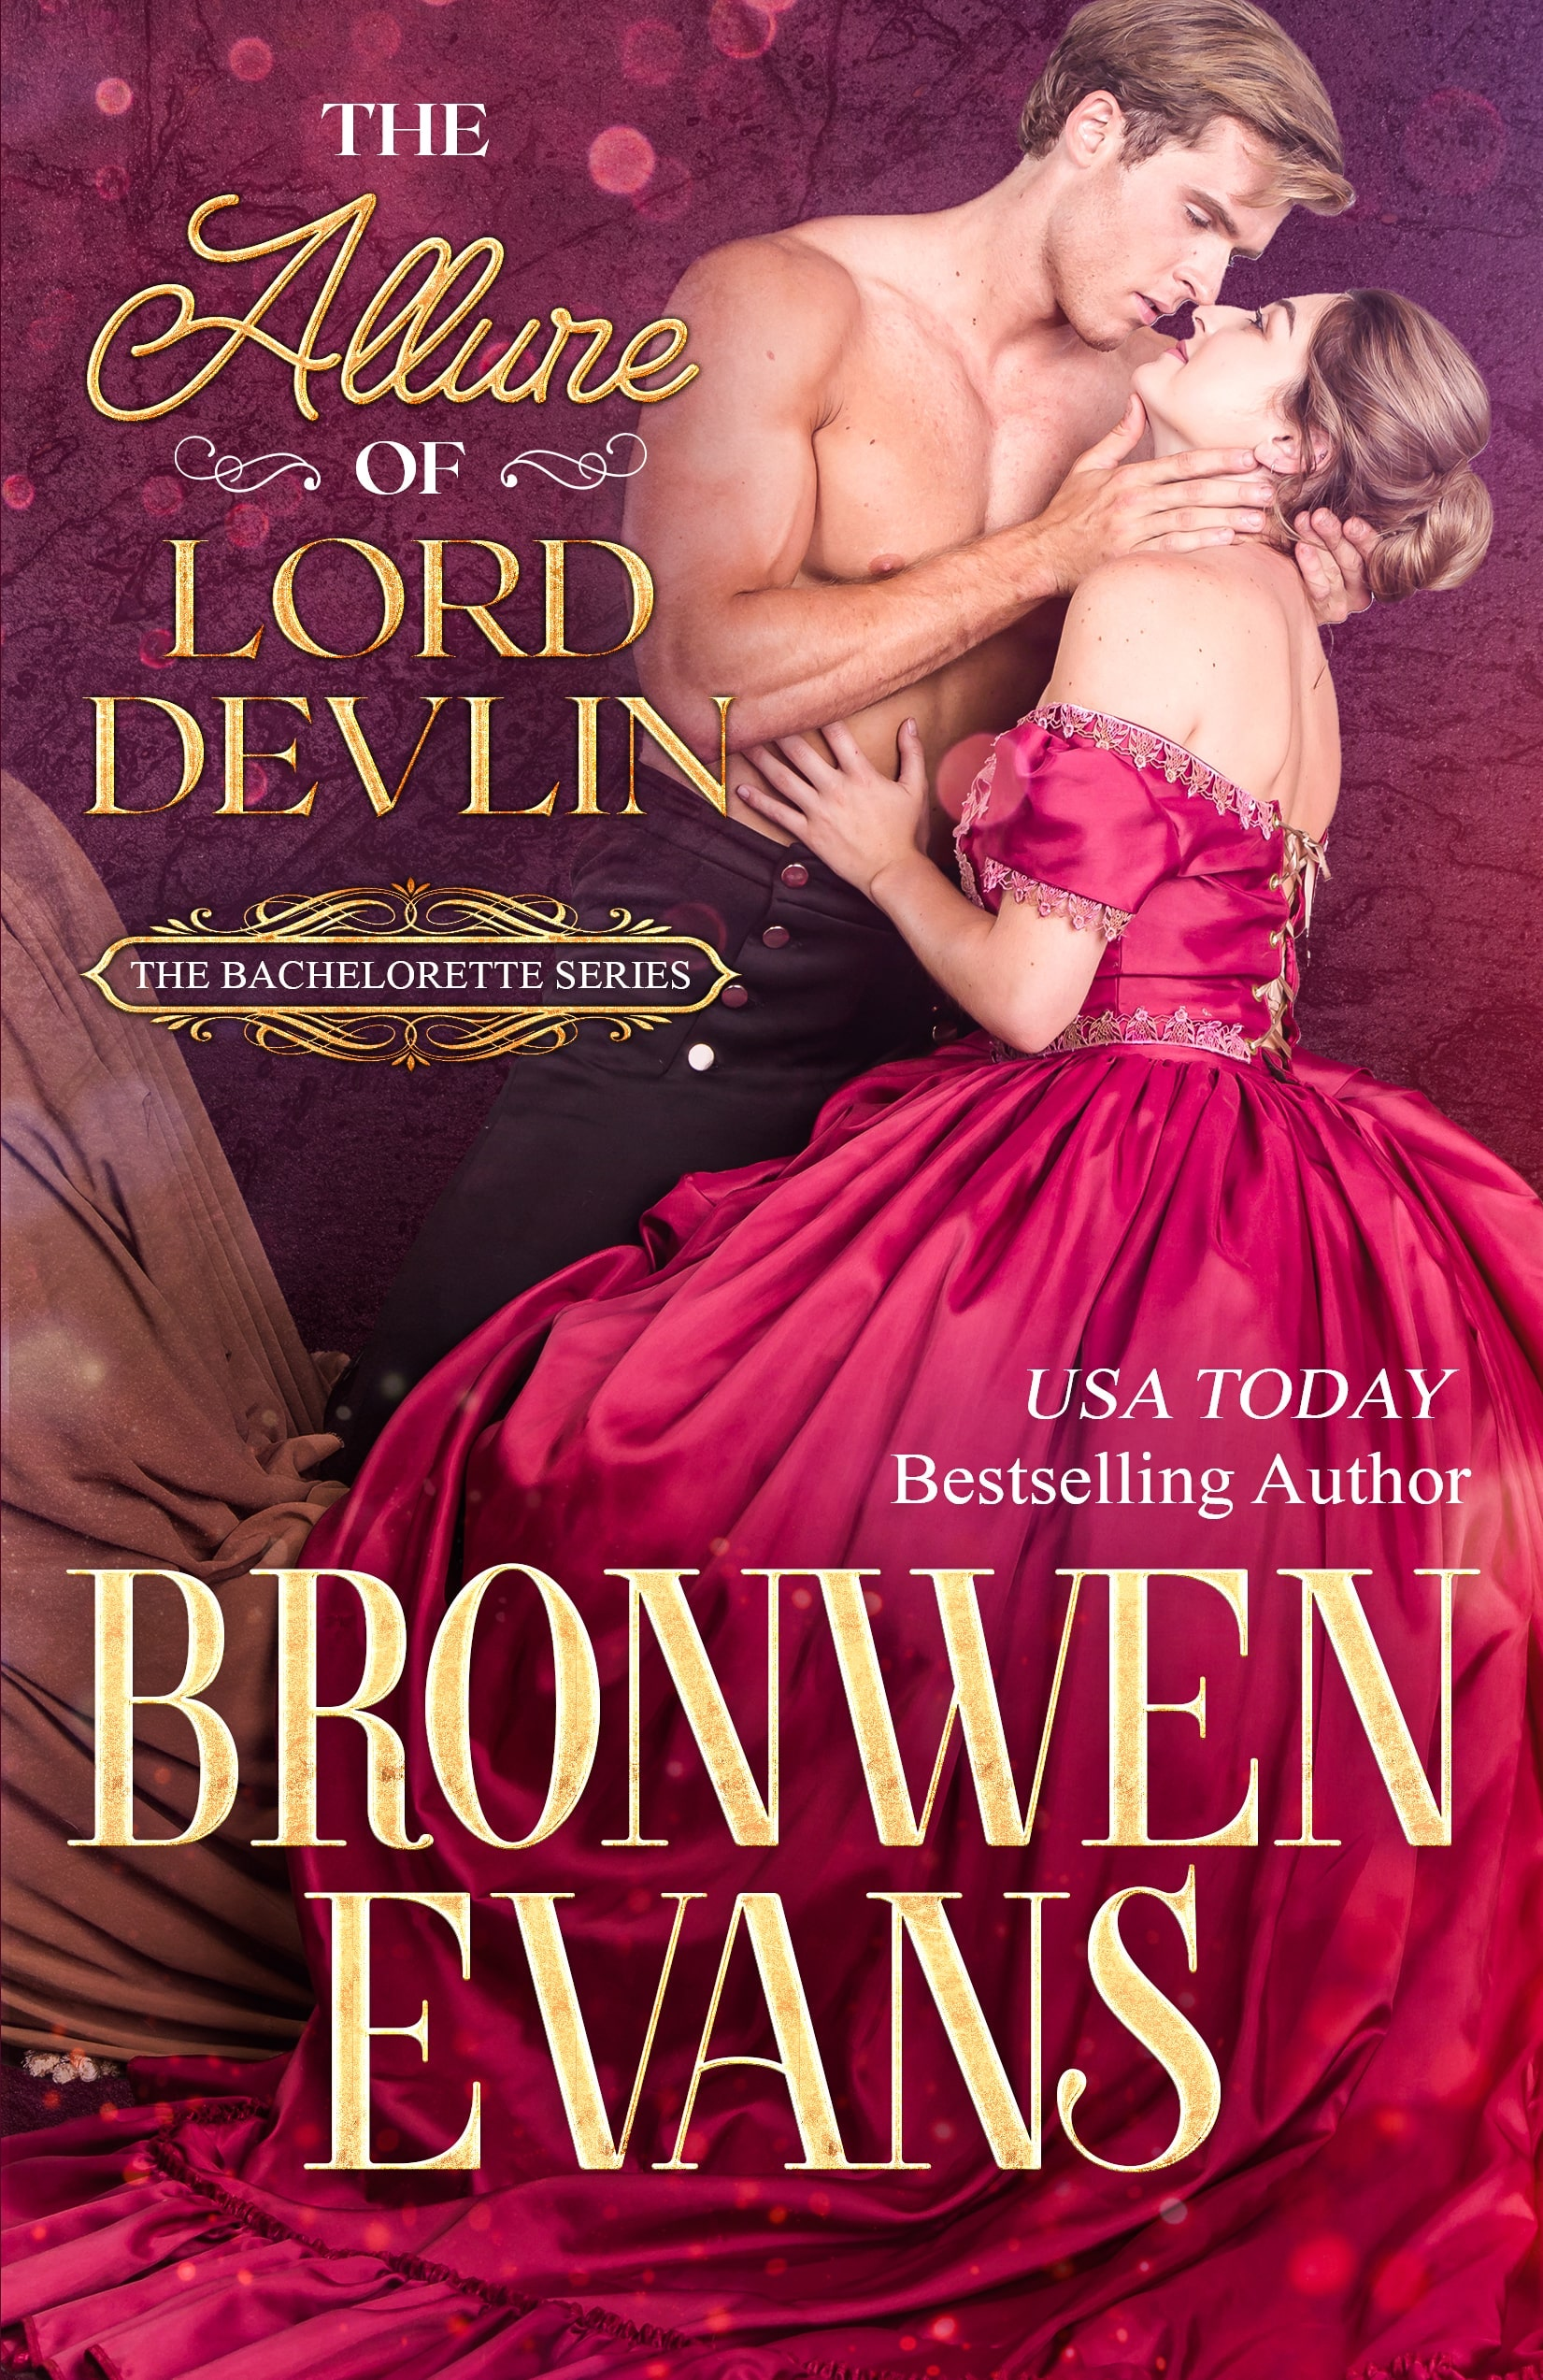 The Allure Of Lord Devlin